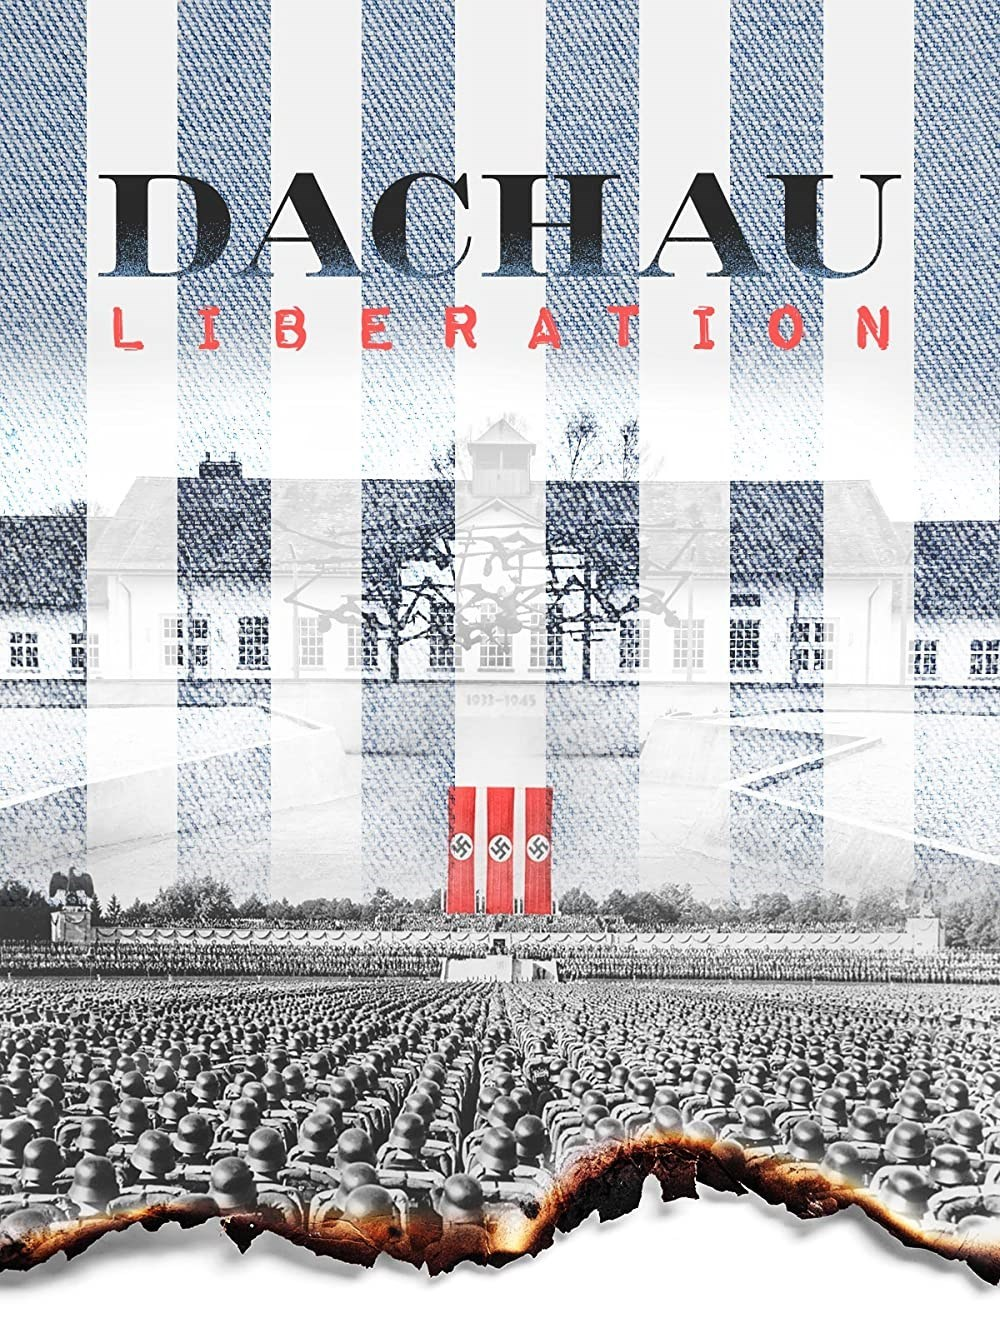 Dachau Photos and Premium High Res Pictures - Getty Images